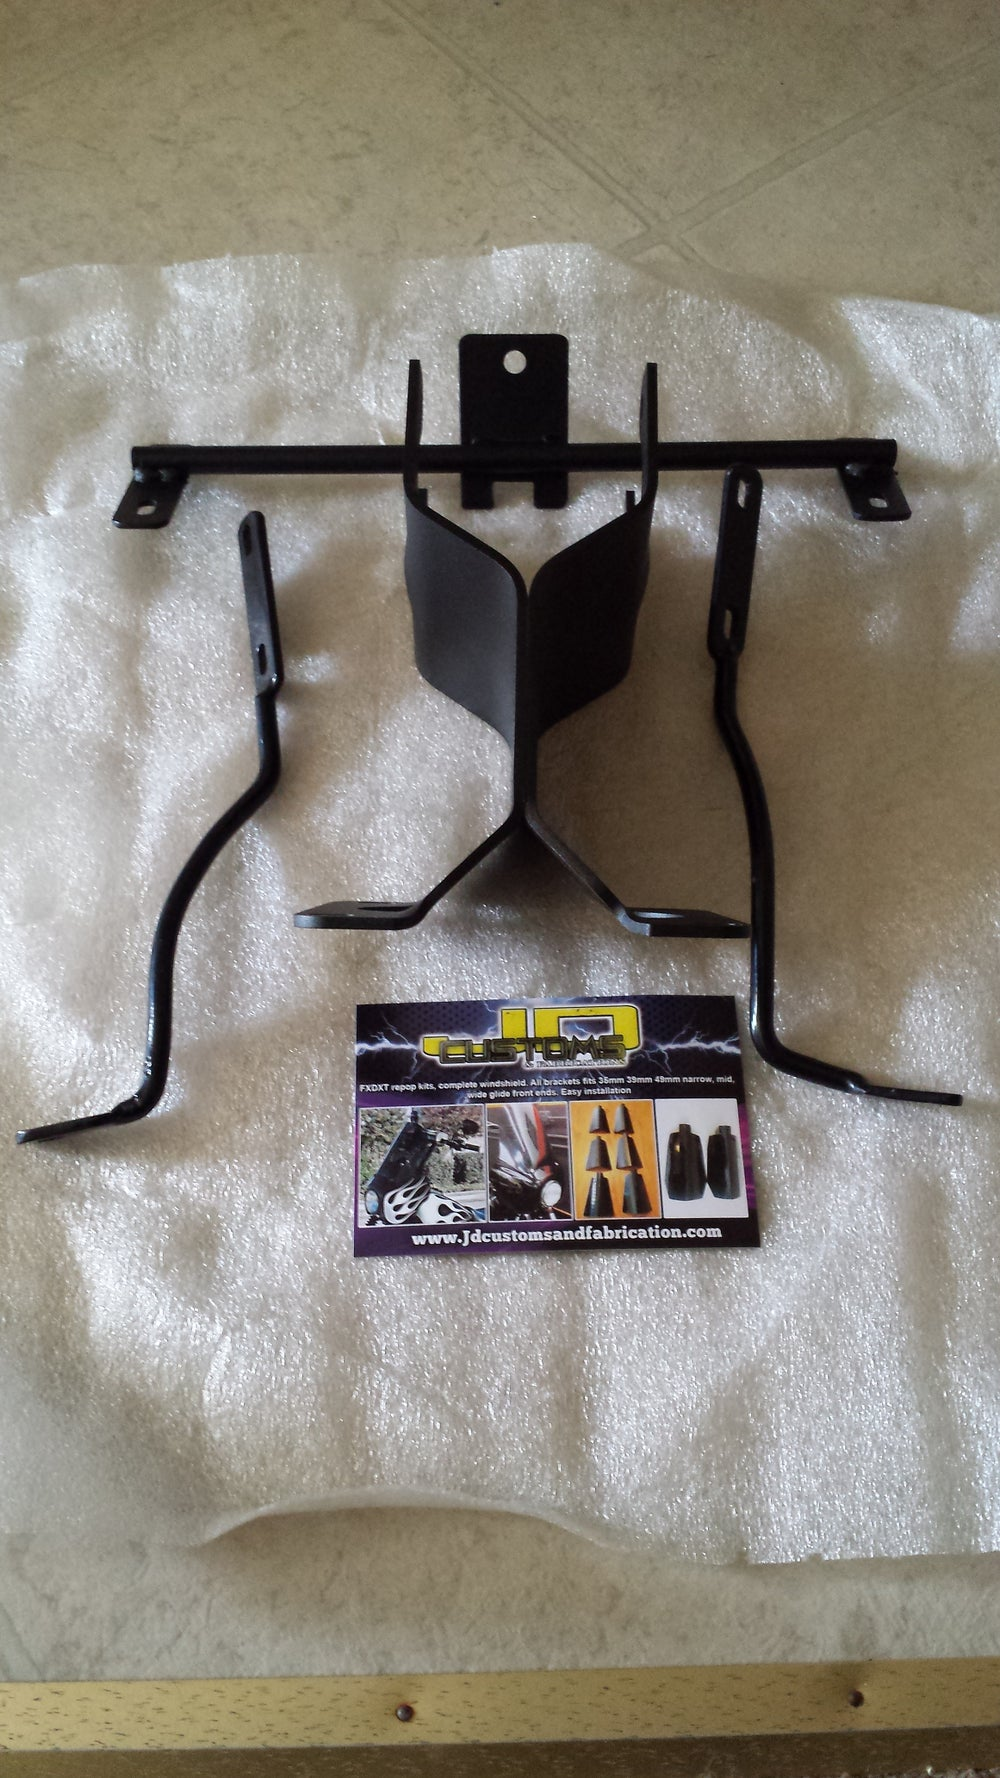 Image of FXRT Reproduction Seperate Brackets and Bracket Kits